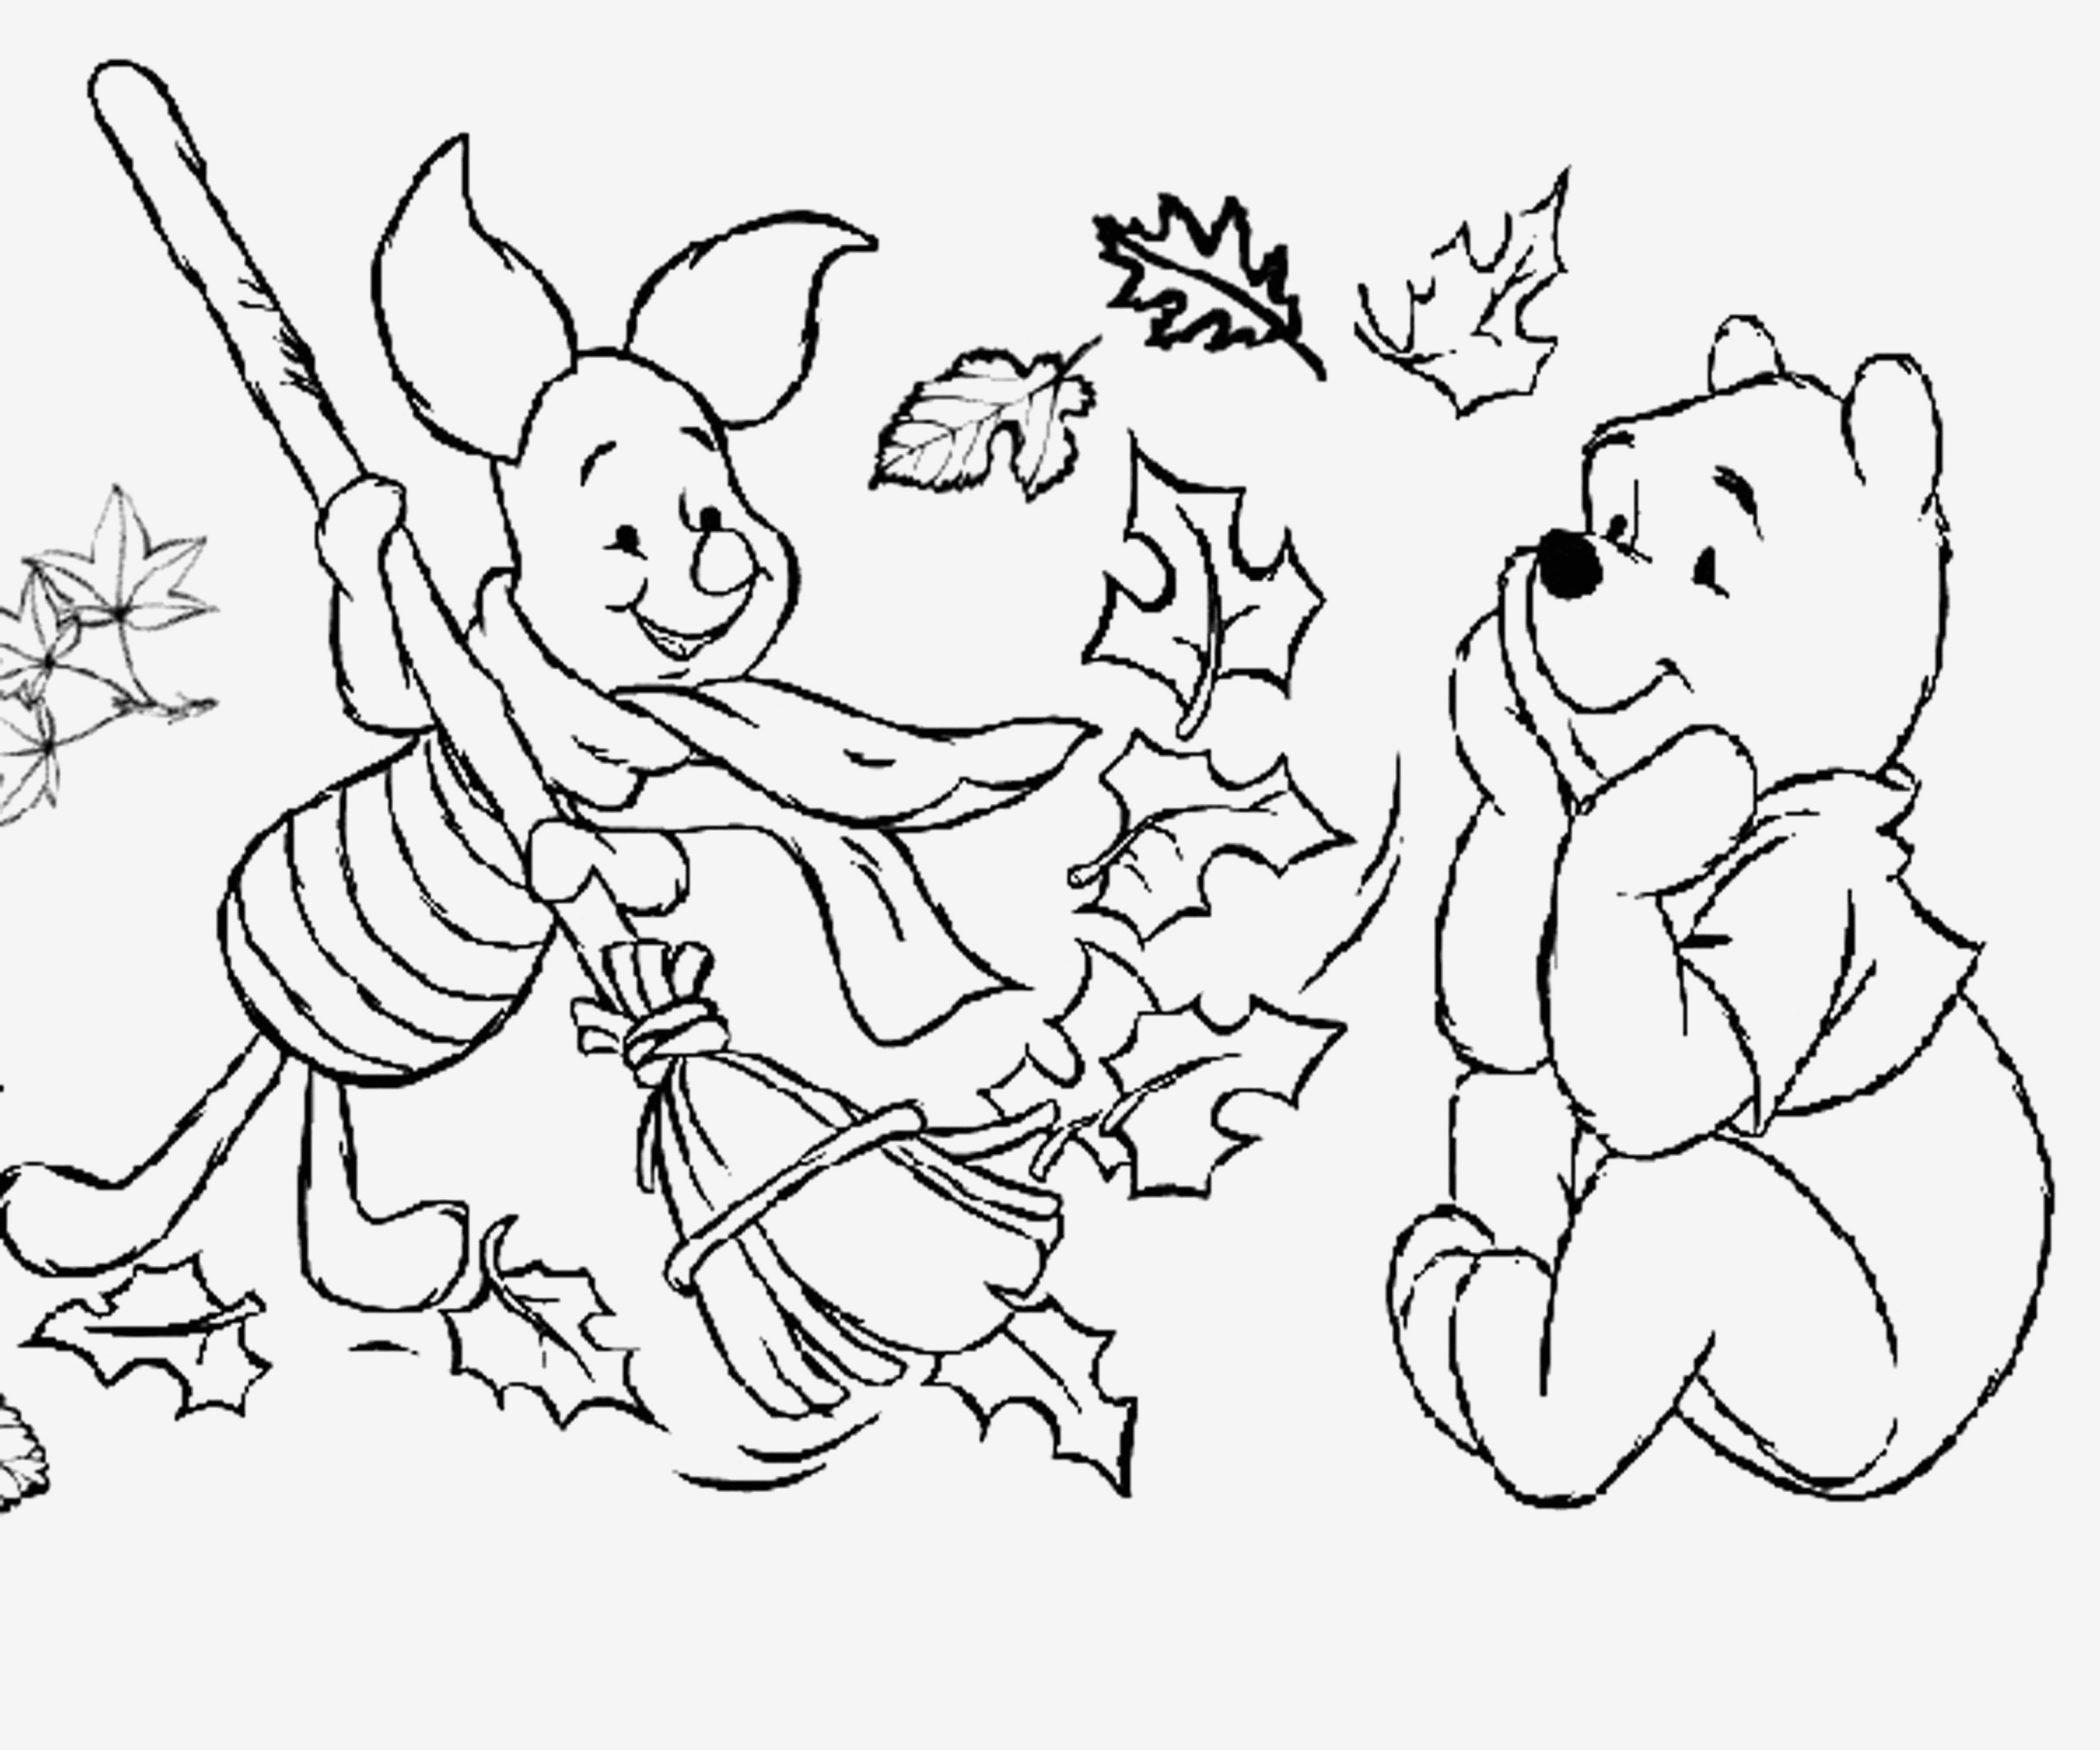 coloring pages for teenagers printable free Download-Easy Adult Coloring Pages Free Print Simple Adult Coloring Pages Elegant Best Coloring Page Adult Od Kids 12-d